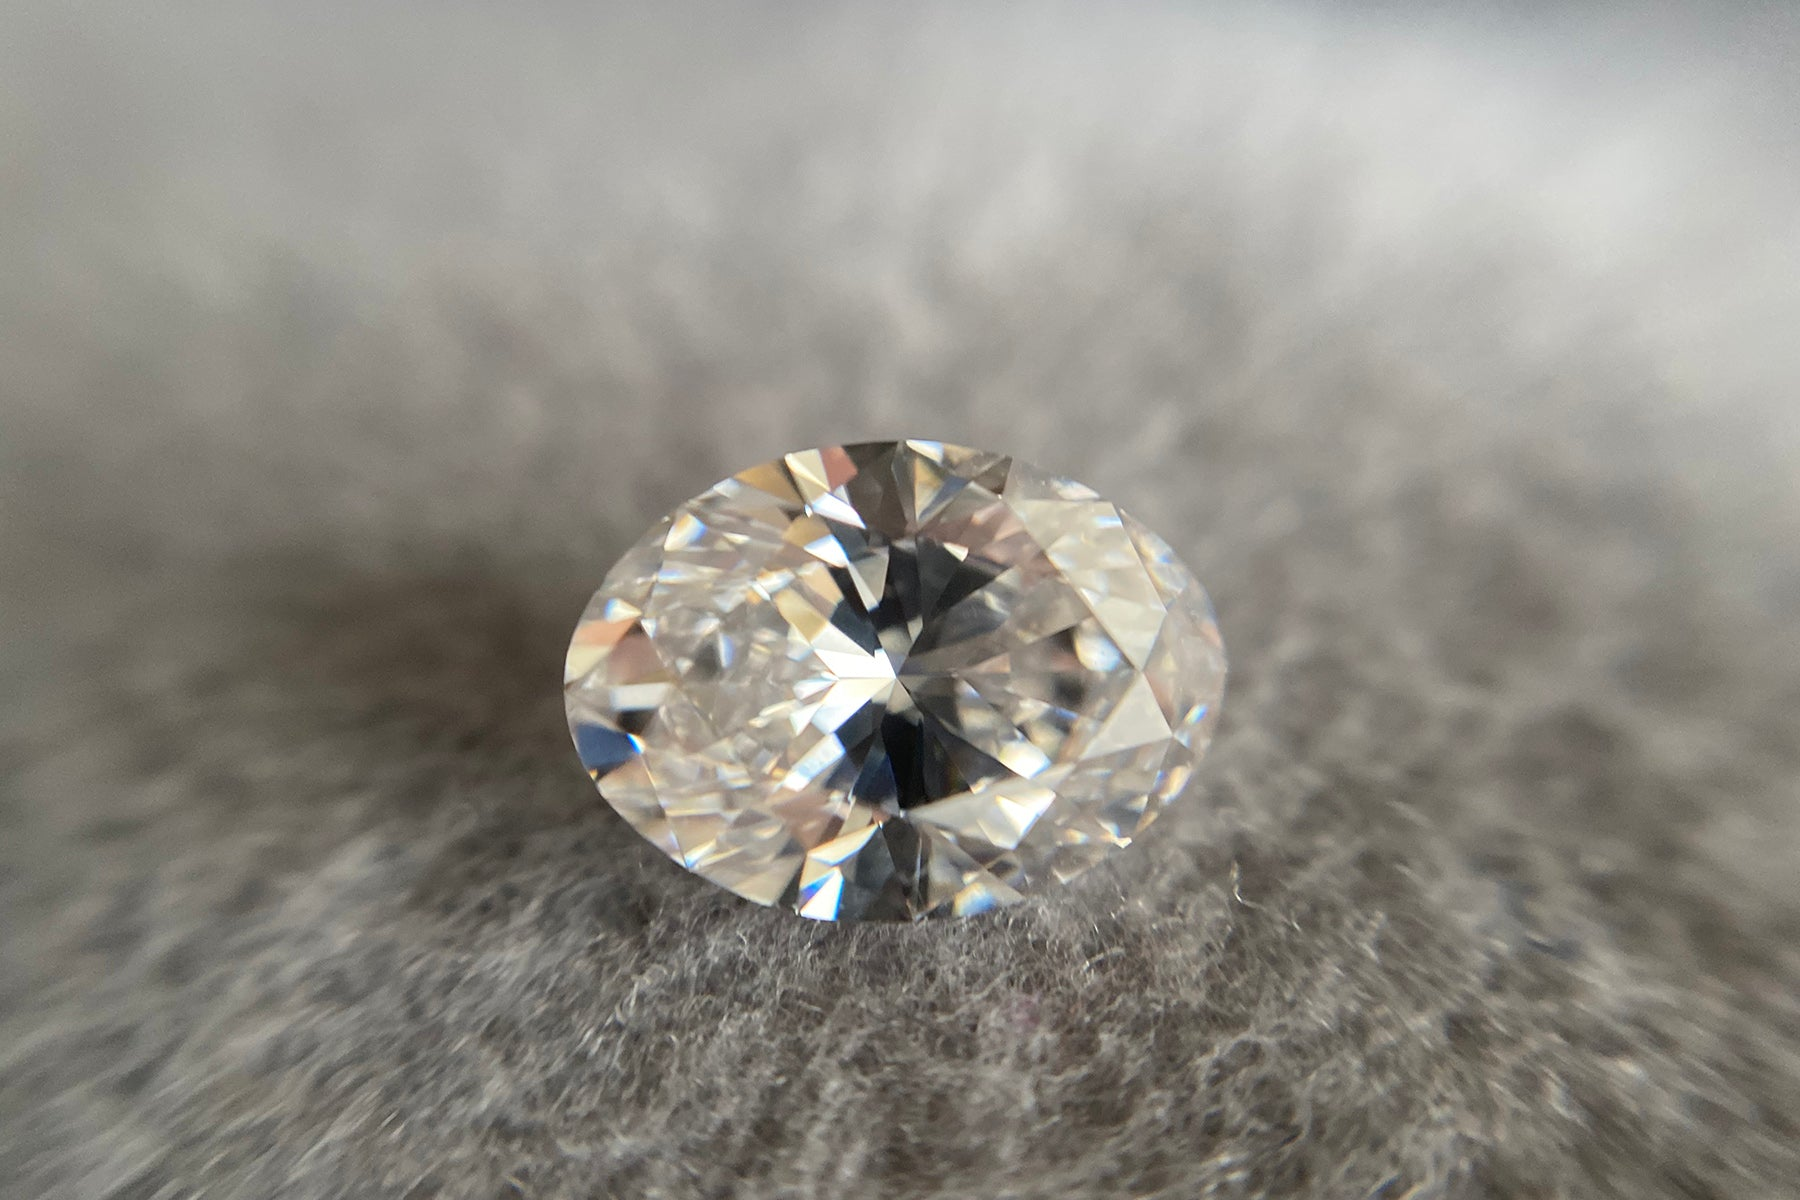 What is the bow-tie effect in an oval diamond?